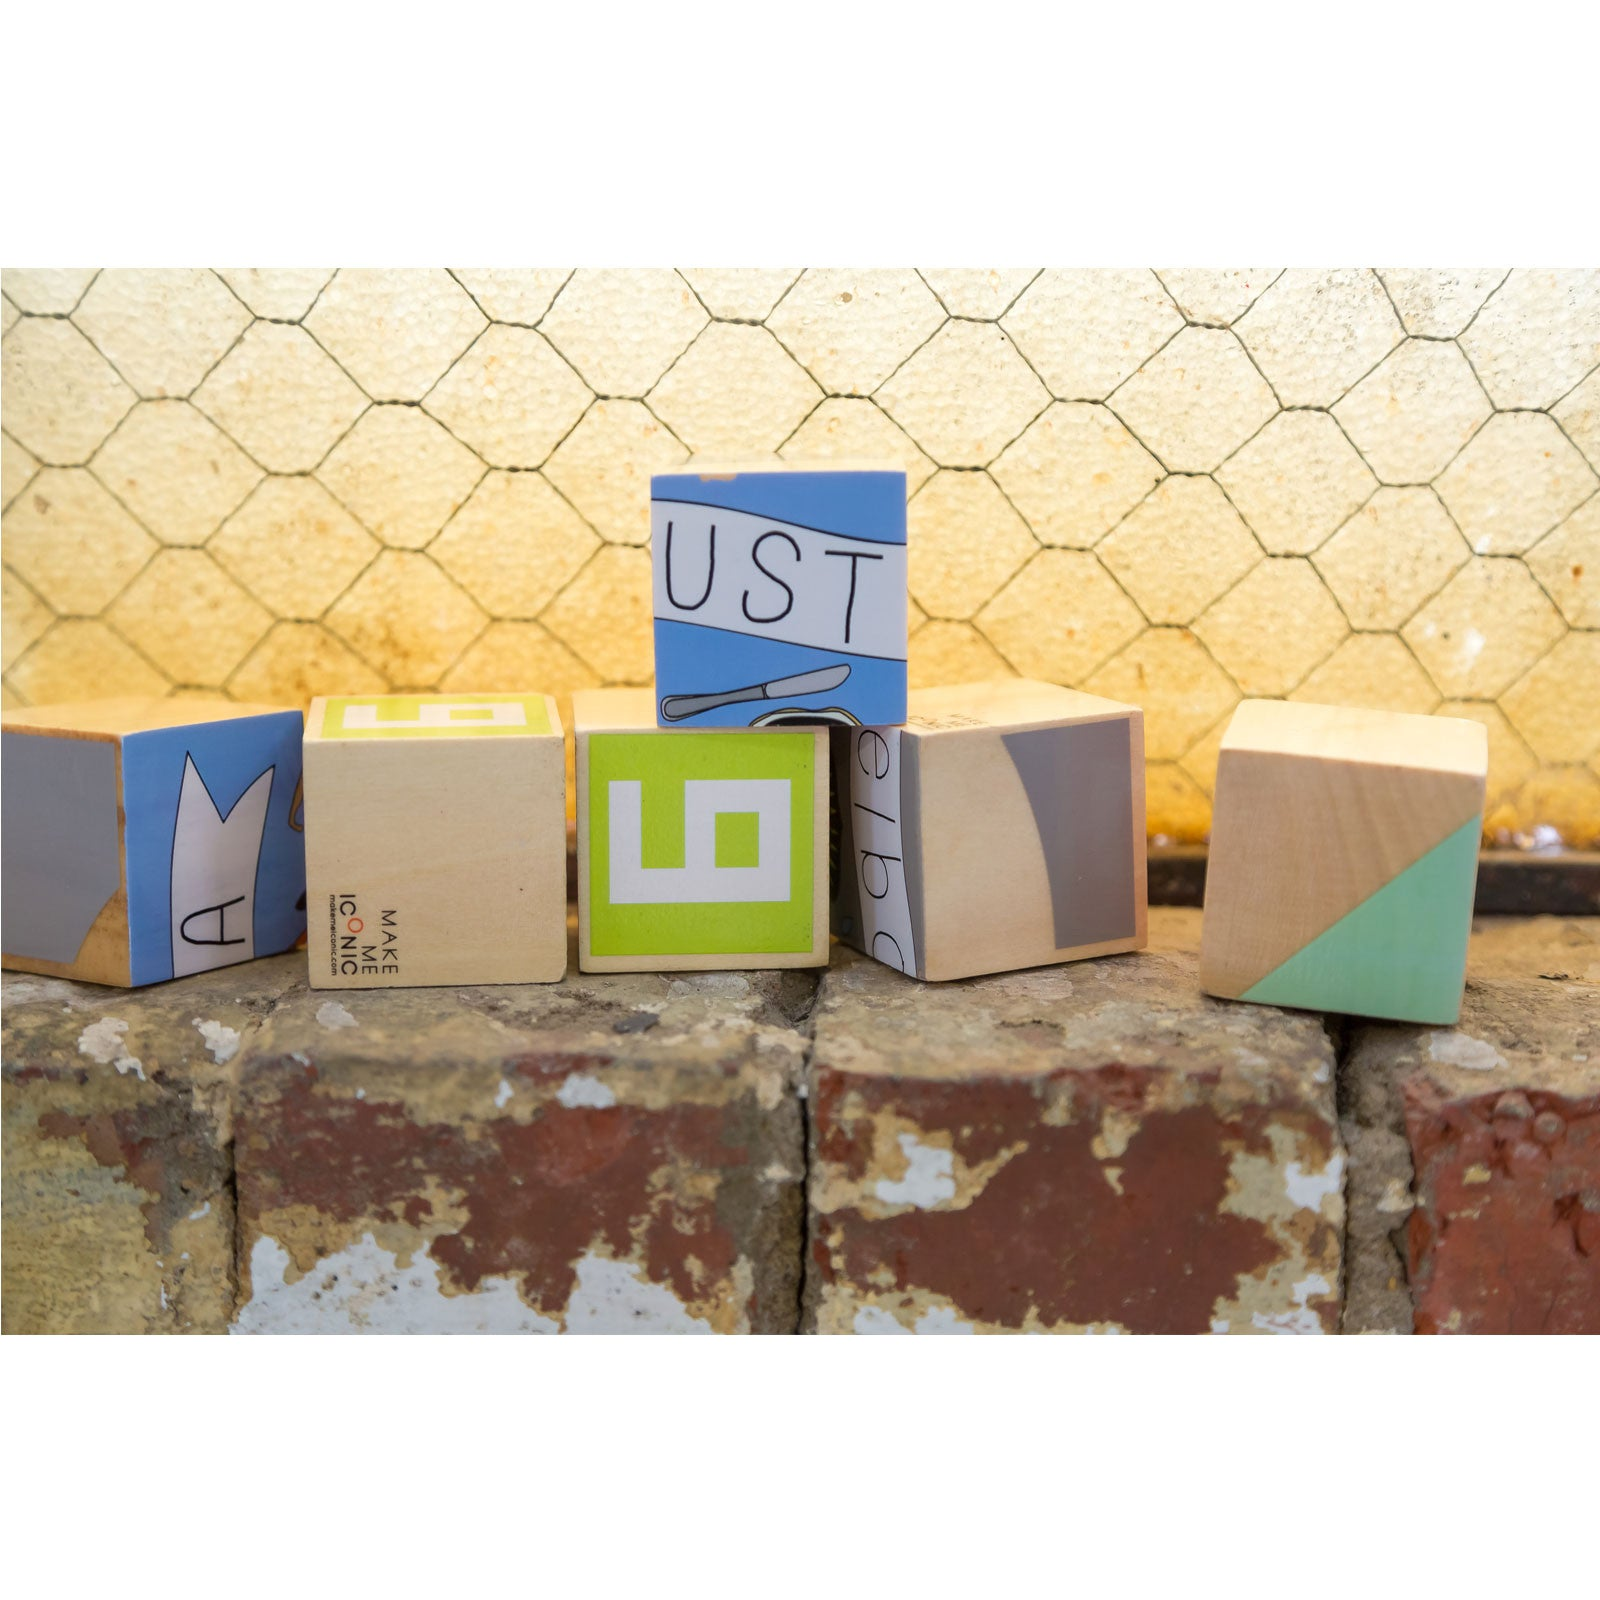 Make Me Iconic Stacking Blocks Make Me Iconic Wooden Blocks at Little Earth Nest Eco Shop